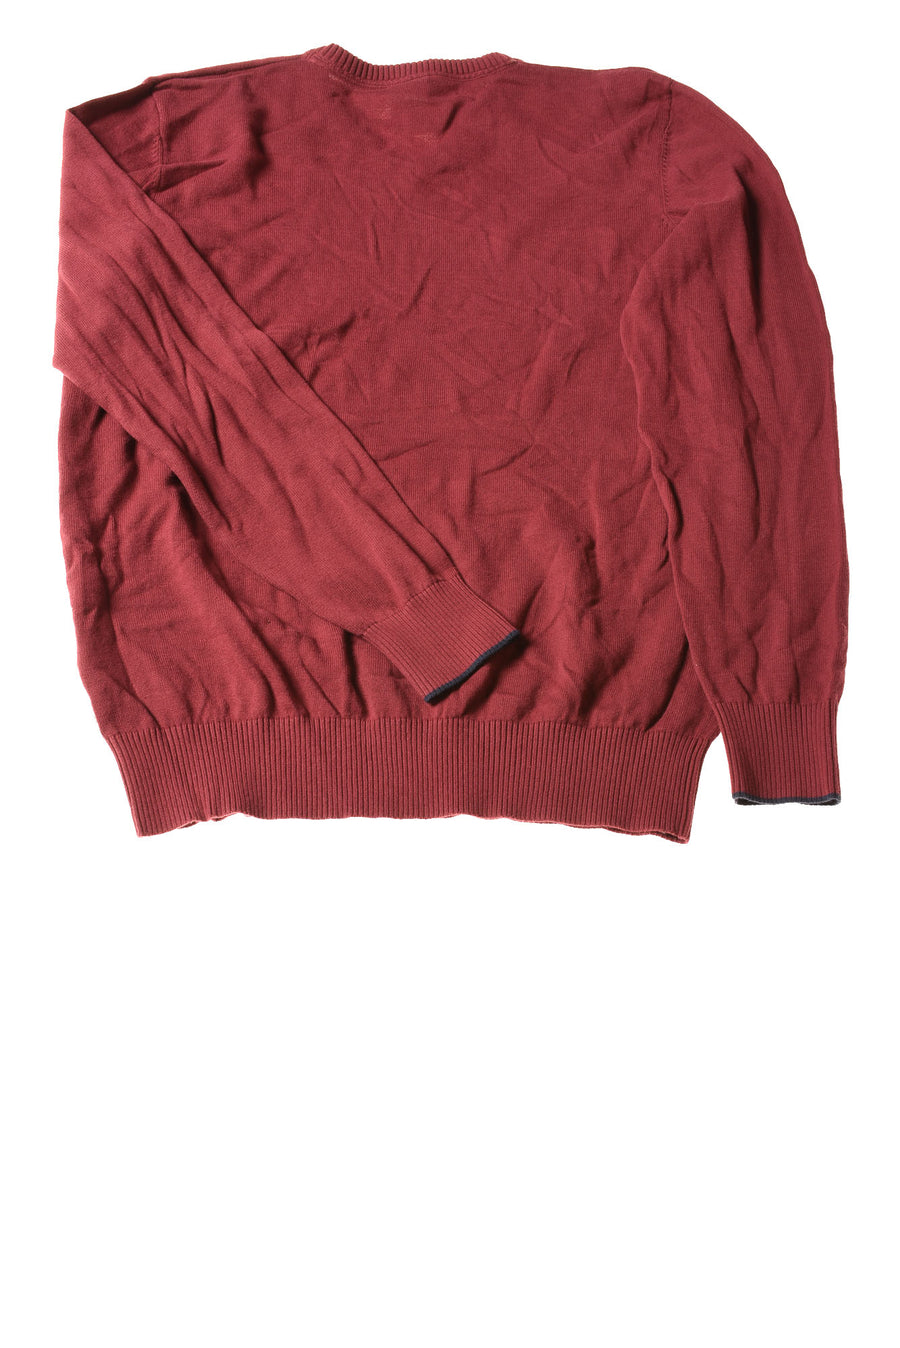 Men's Sweater By Timberland